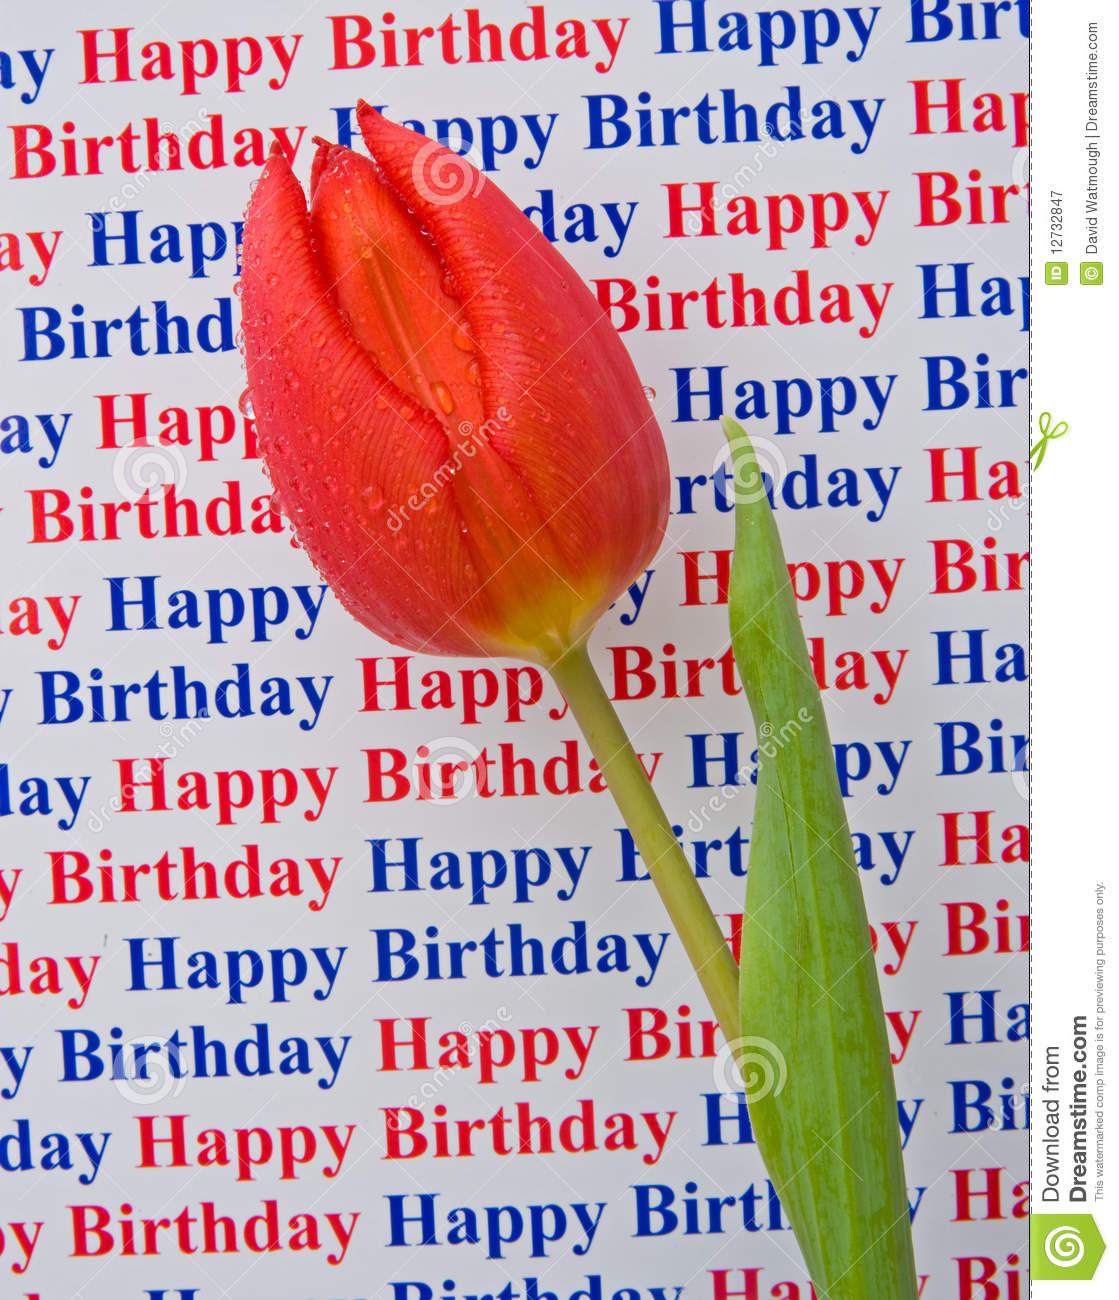 happy birthday picture message free download ; happy-birthday-special-message-tulip-12732847